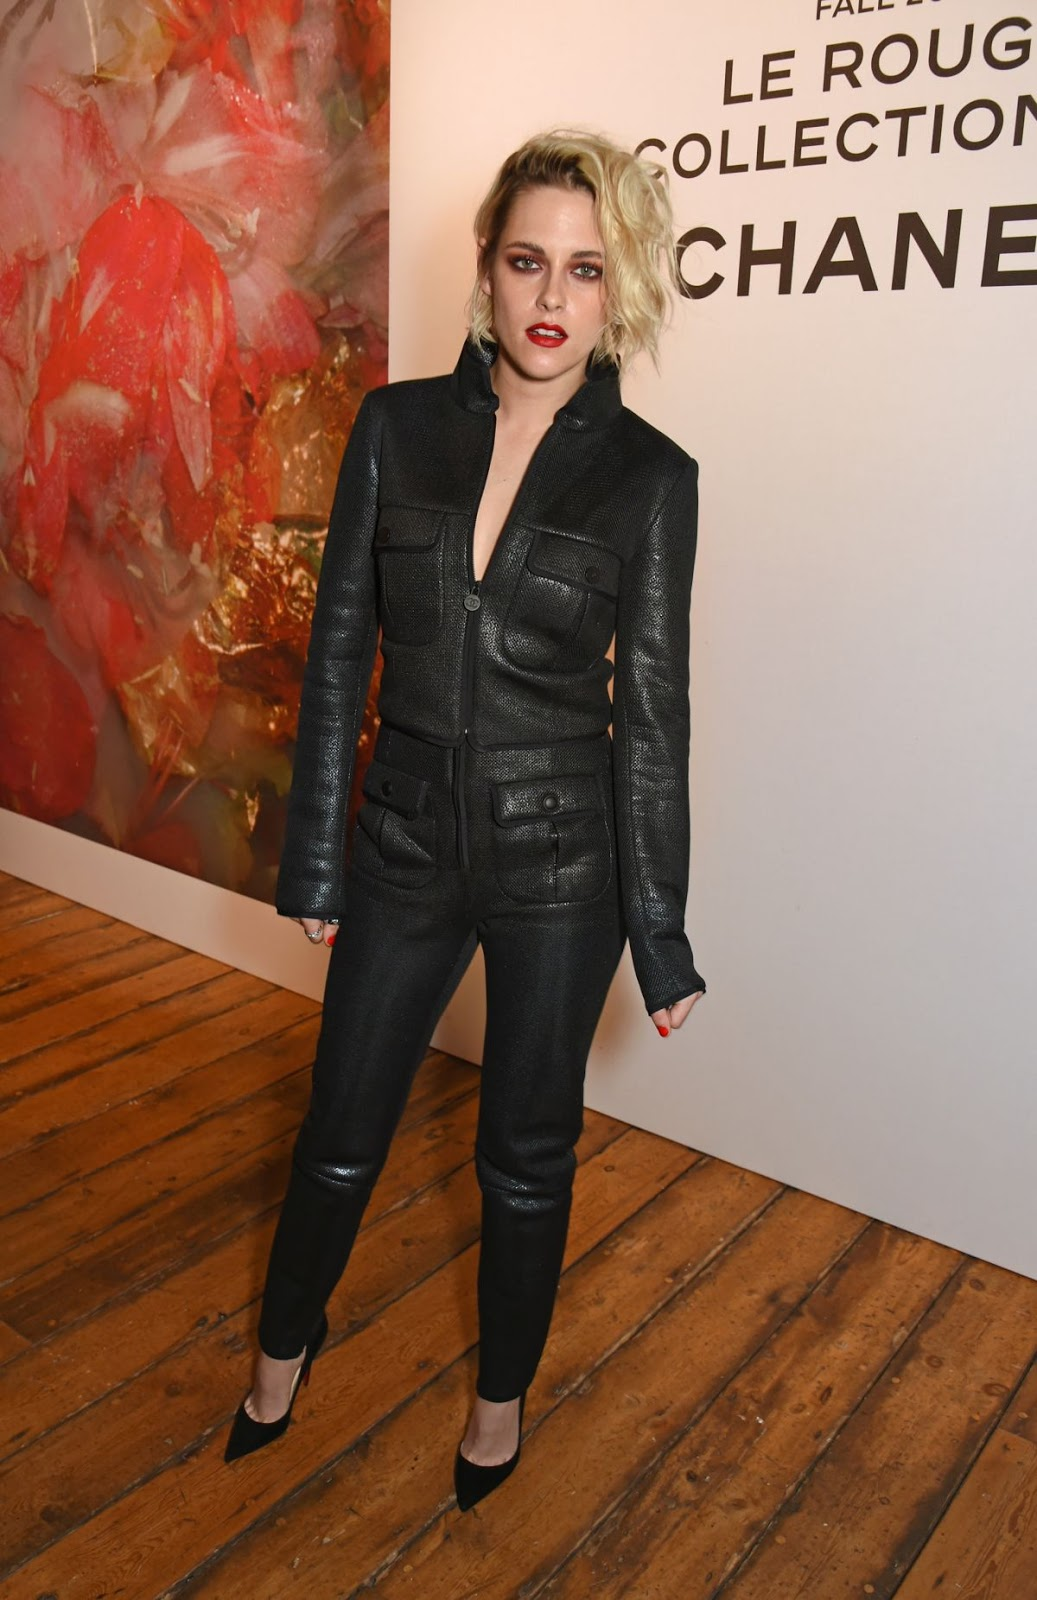 Kristen Stewart Al Lucia Pica Makeup Collection For Chanel Launch In London